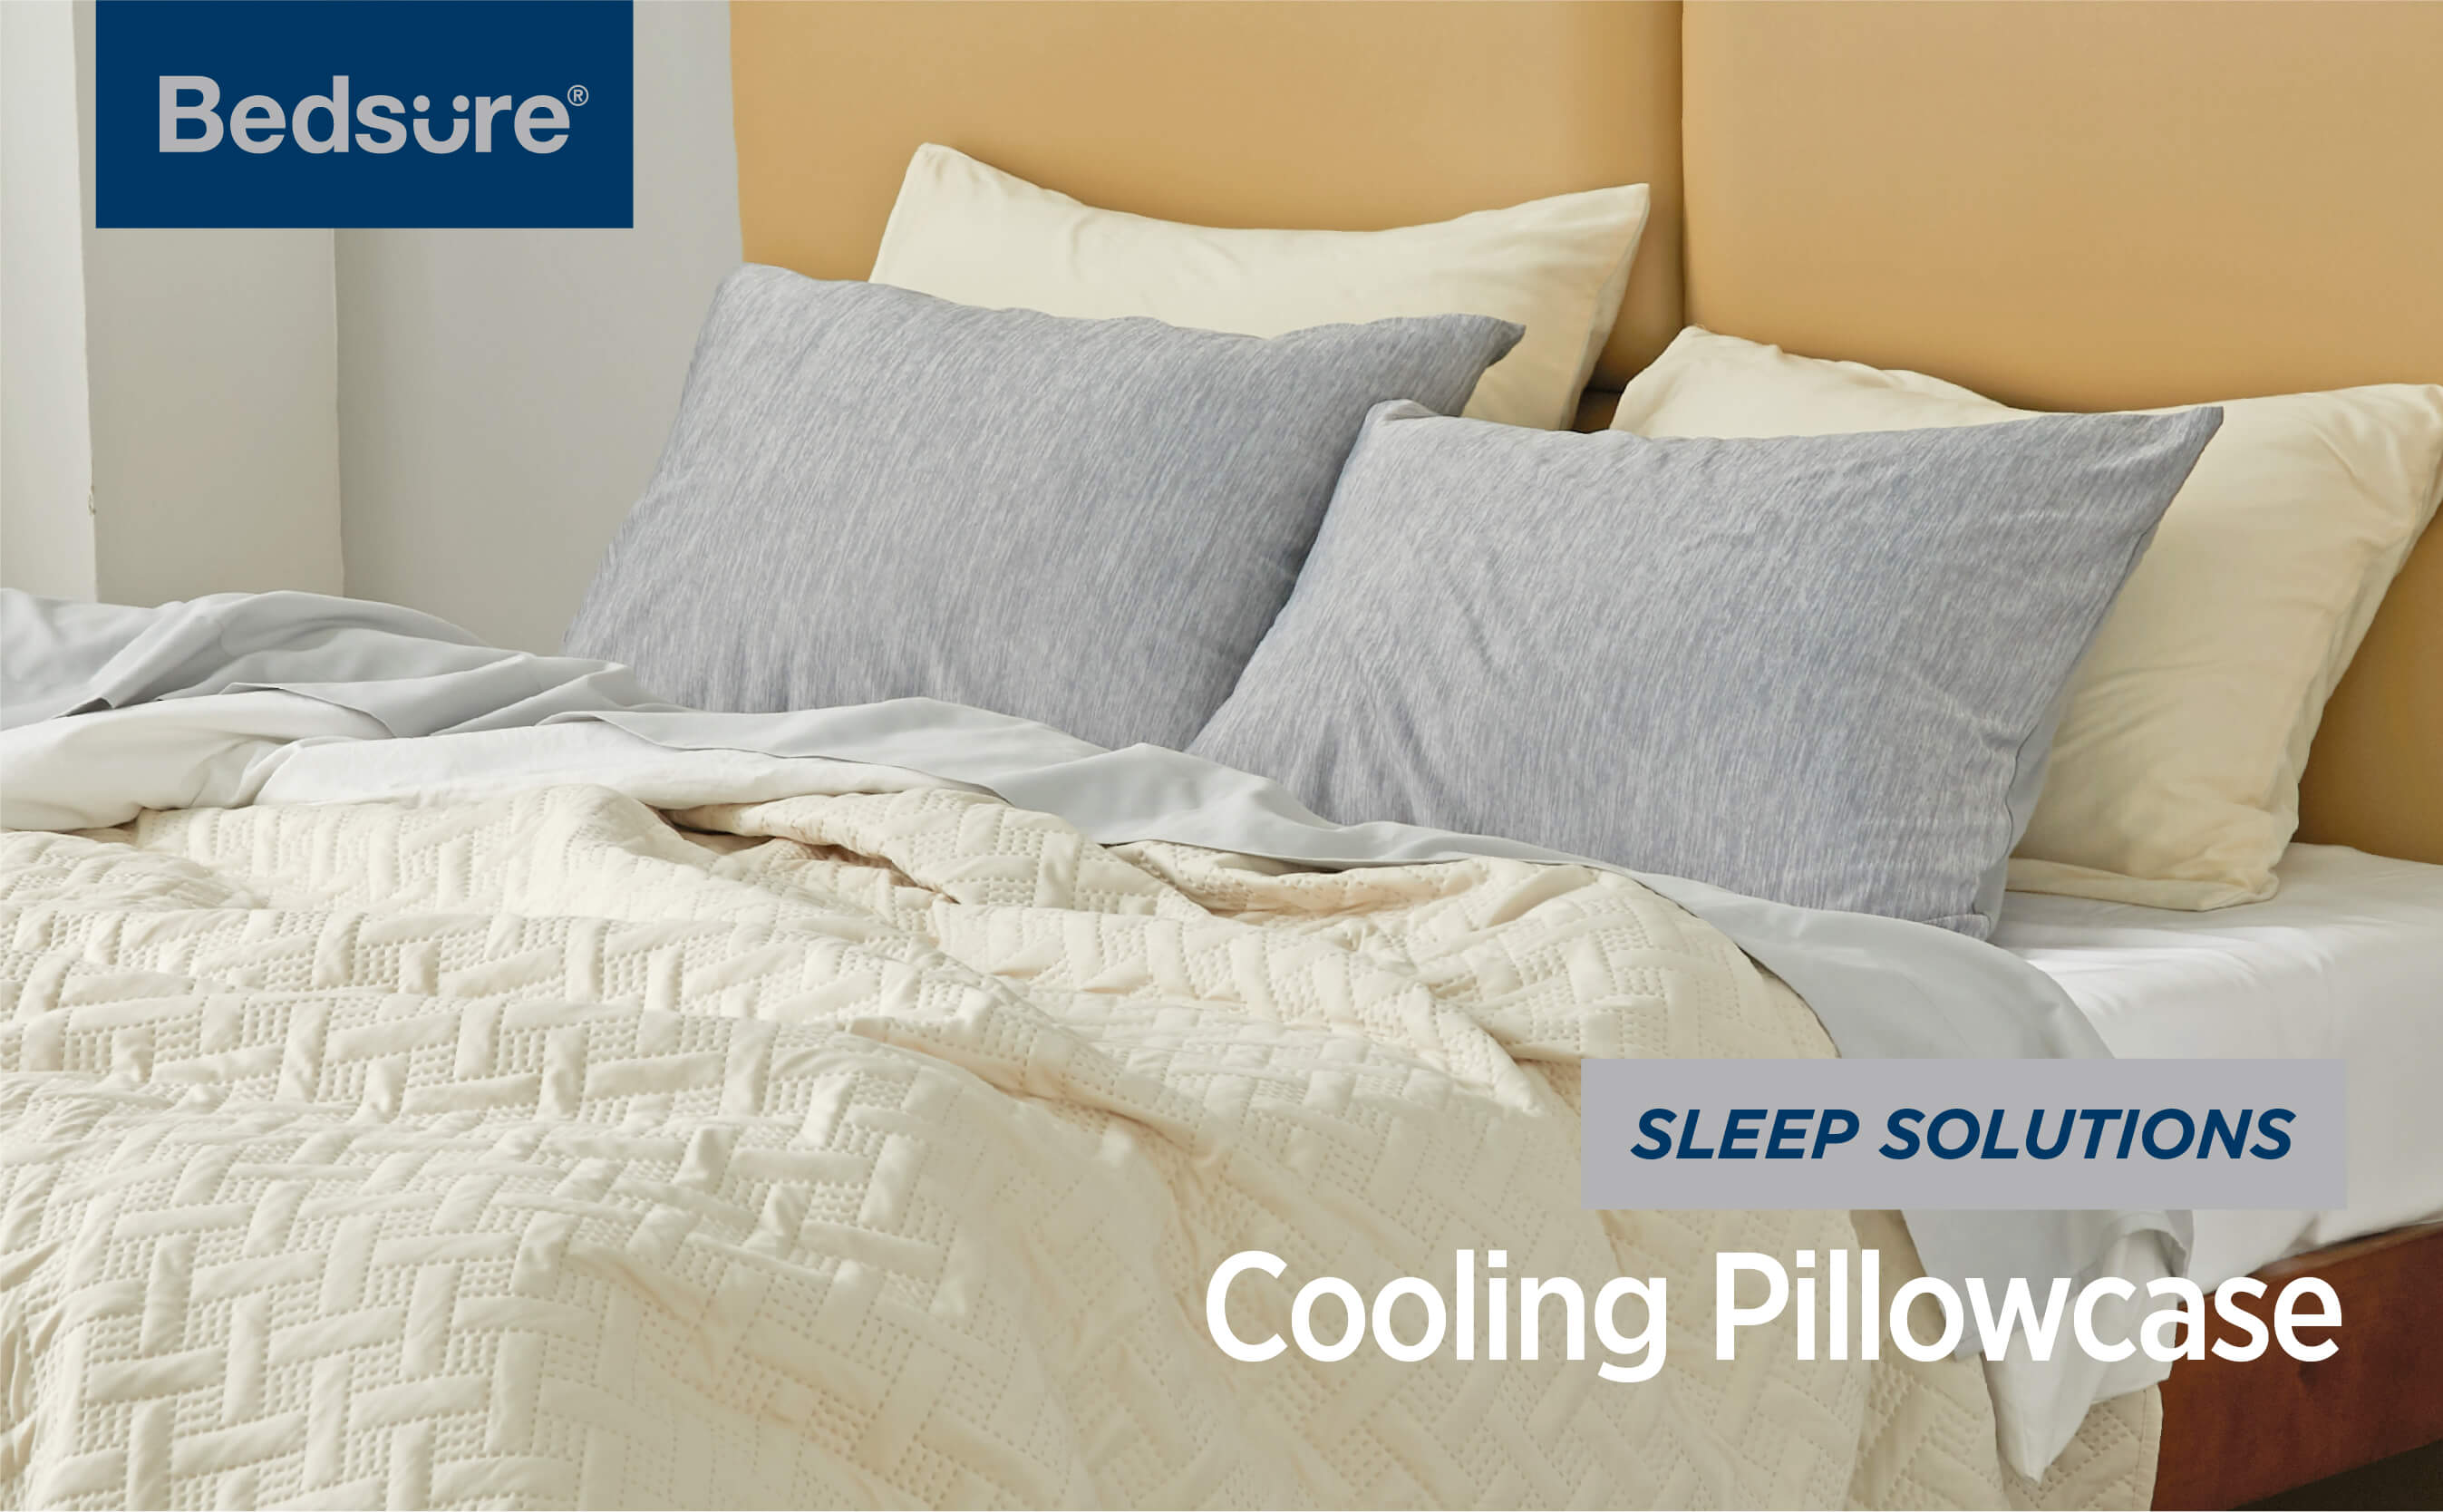 Bedsure | Cooling Pillow Cases for Night Sweats and Hot Sleepers